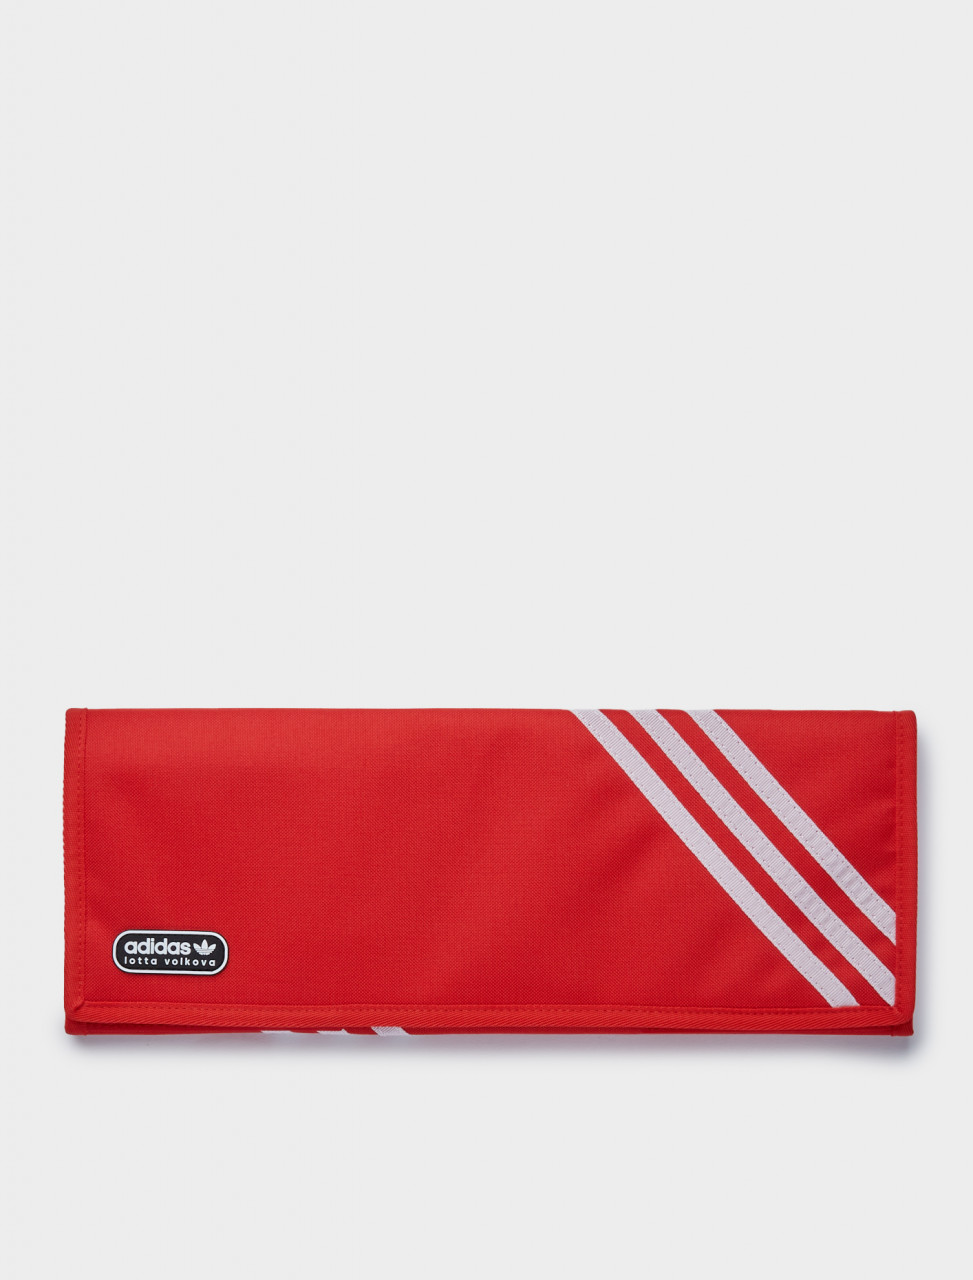 105-GE7801 ADIDAS LOTTA VOLKOVA 3 FOLD CLUTCH RED